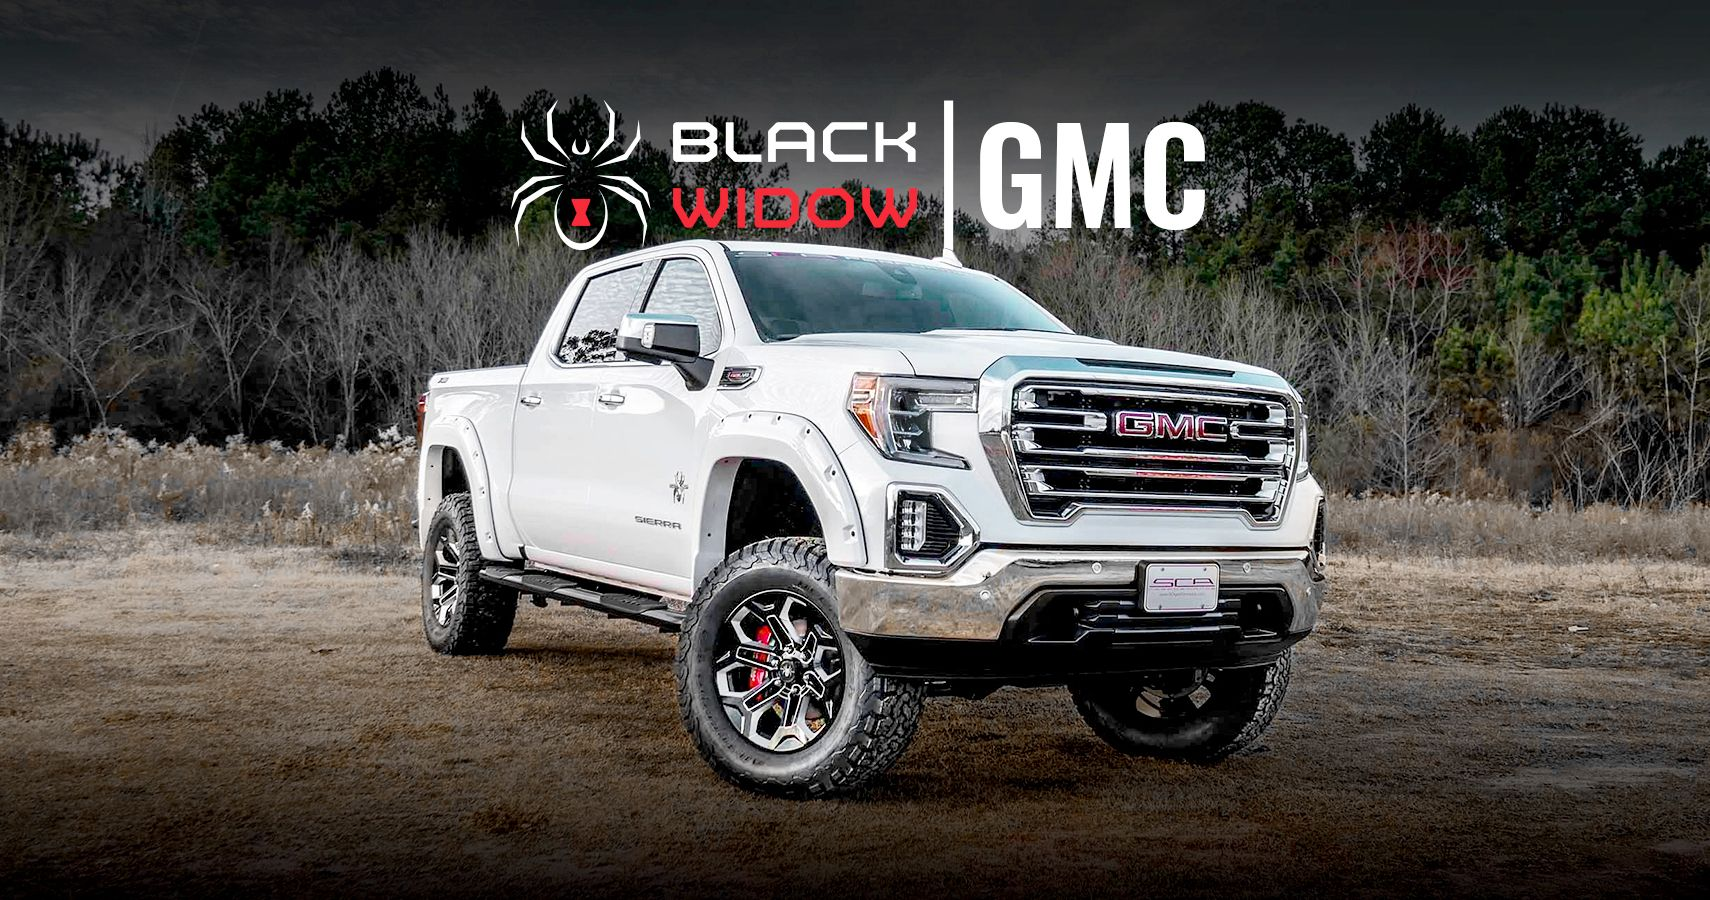 SCA Performance Rolls Out GMC Black Widow Armed Forces Edition